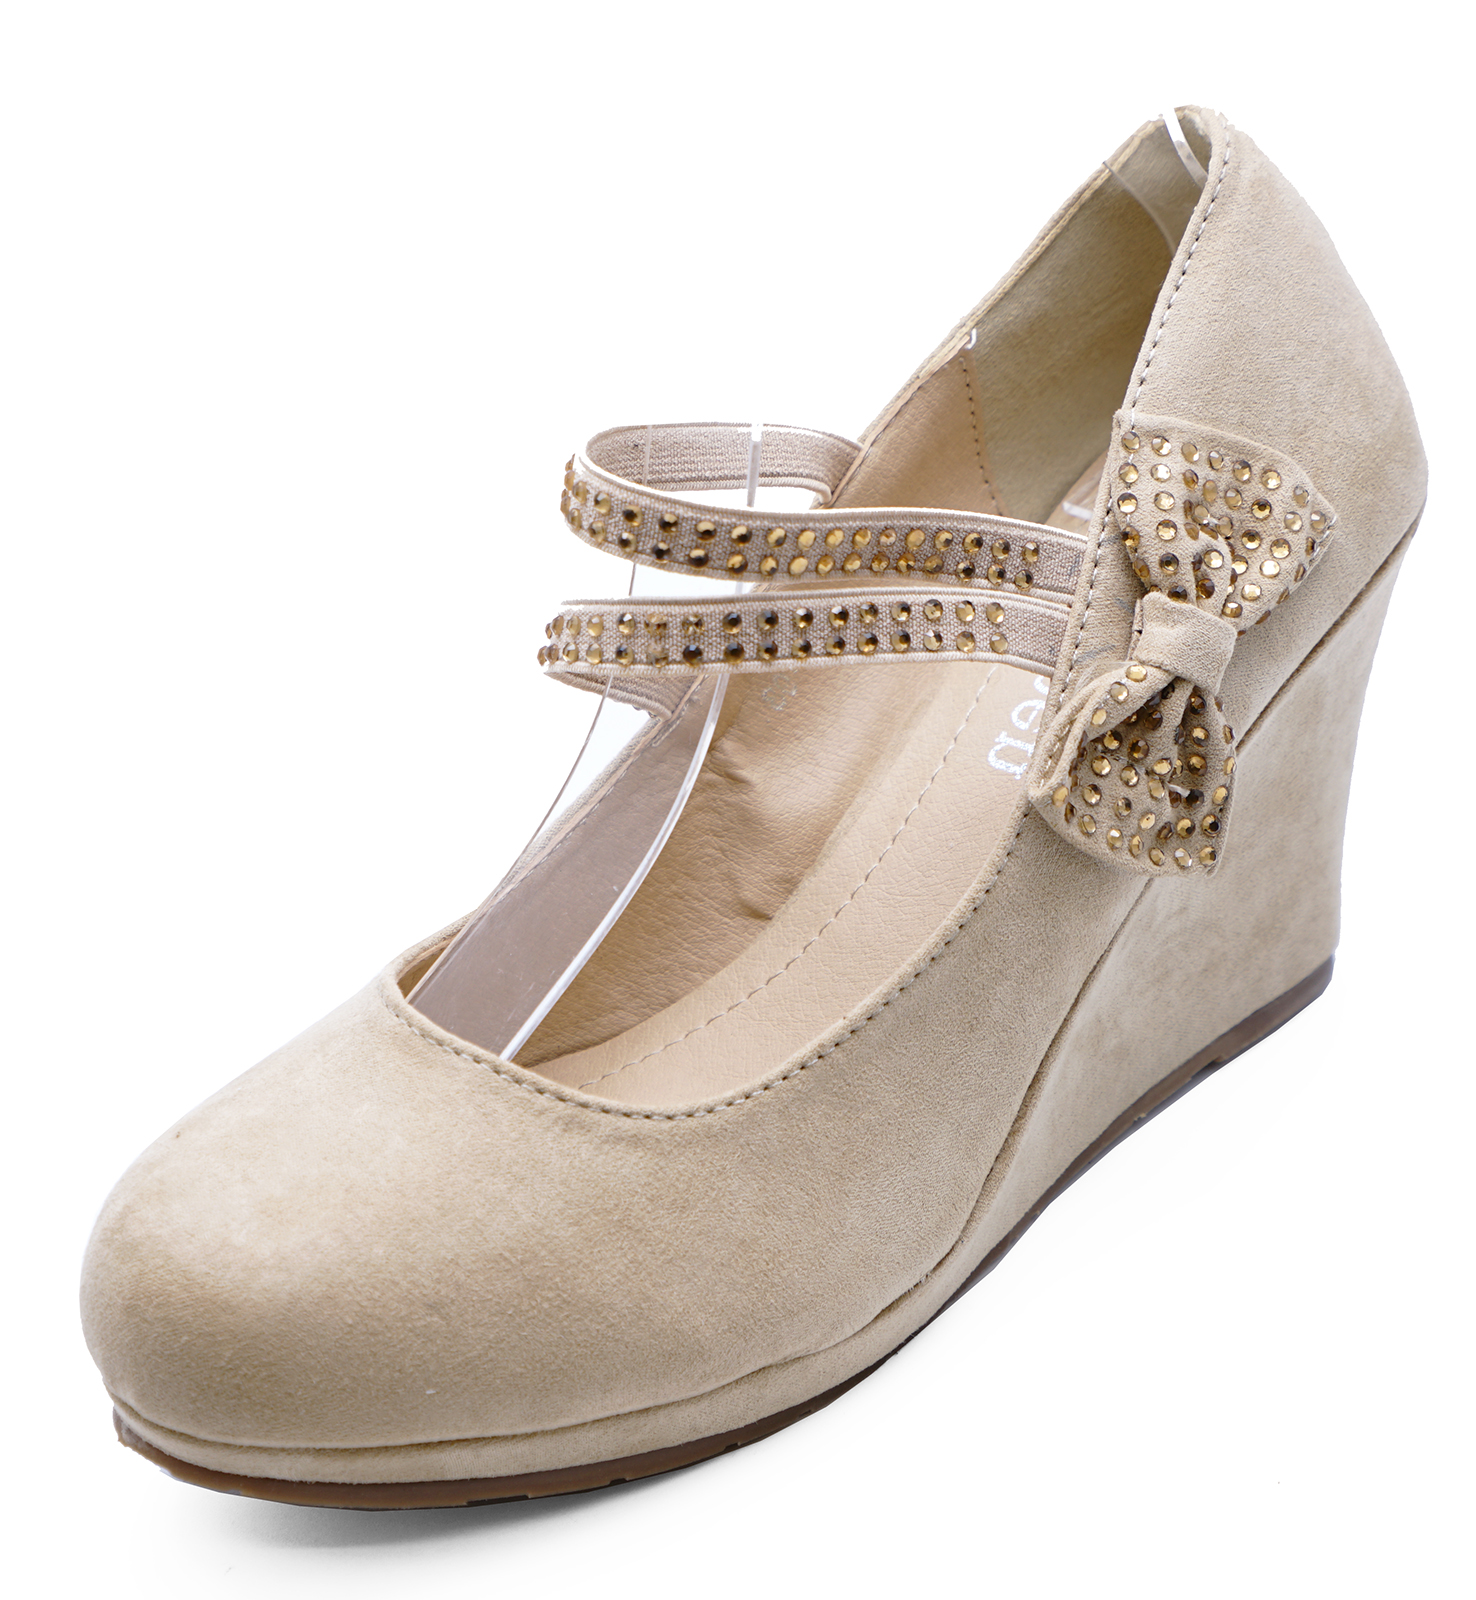 fac5e76ad0c Sentinel WOMENS BEIGE NUDE SLIP-ON BOW PARTY WEDGES PLATFORM COURT SHOES  PUMPS SIZE 3-